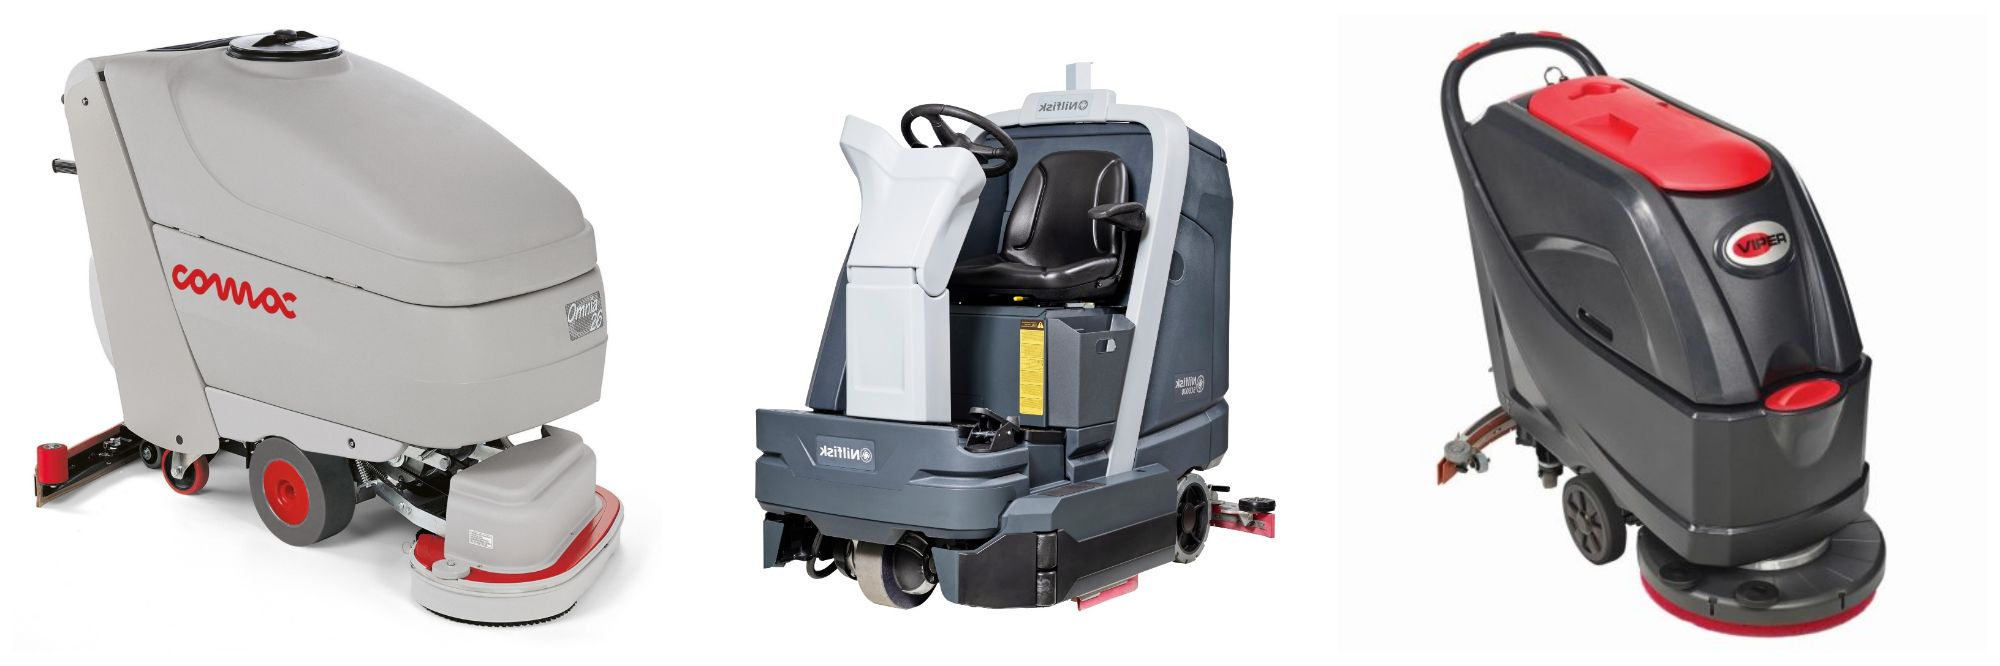 Scrubber Dryer(1) (3)